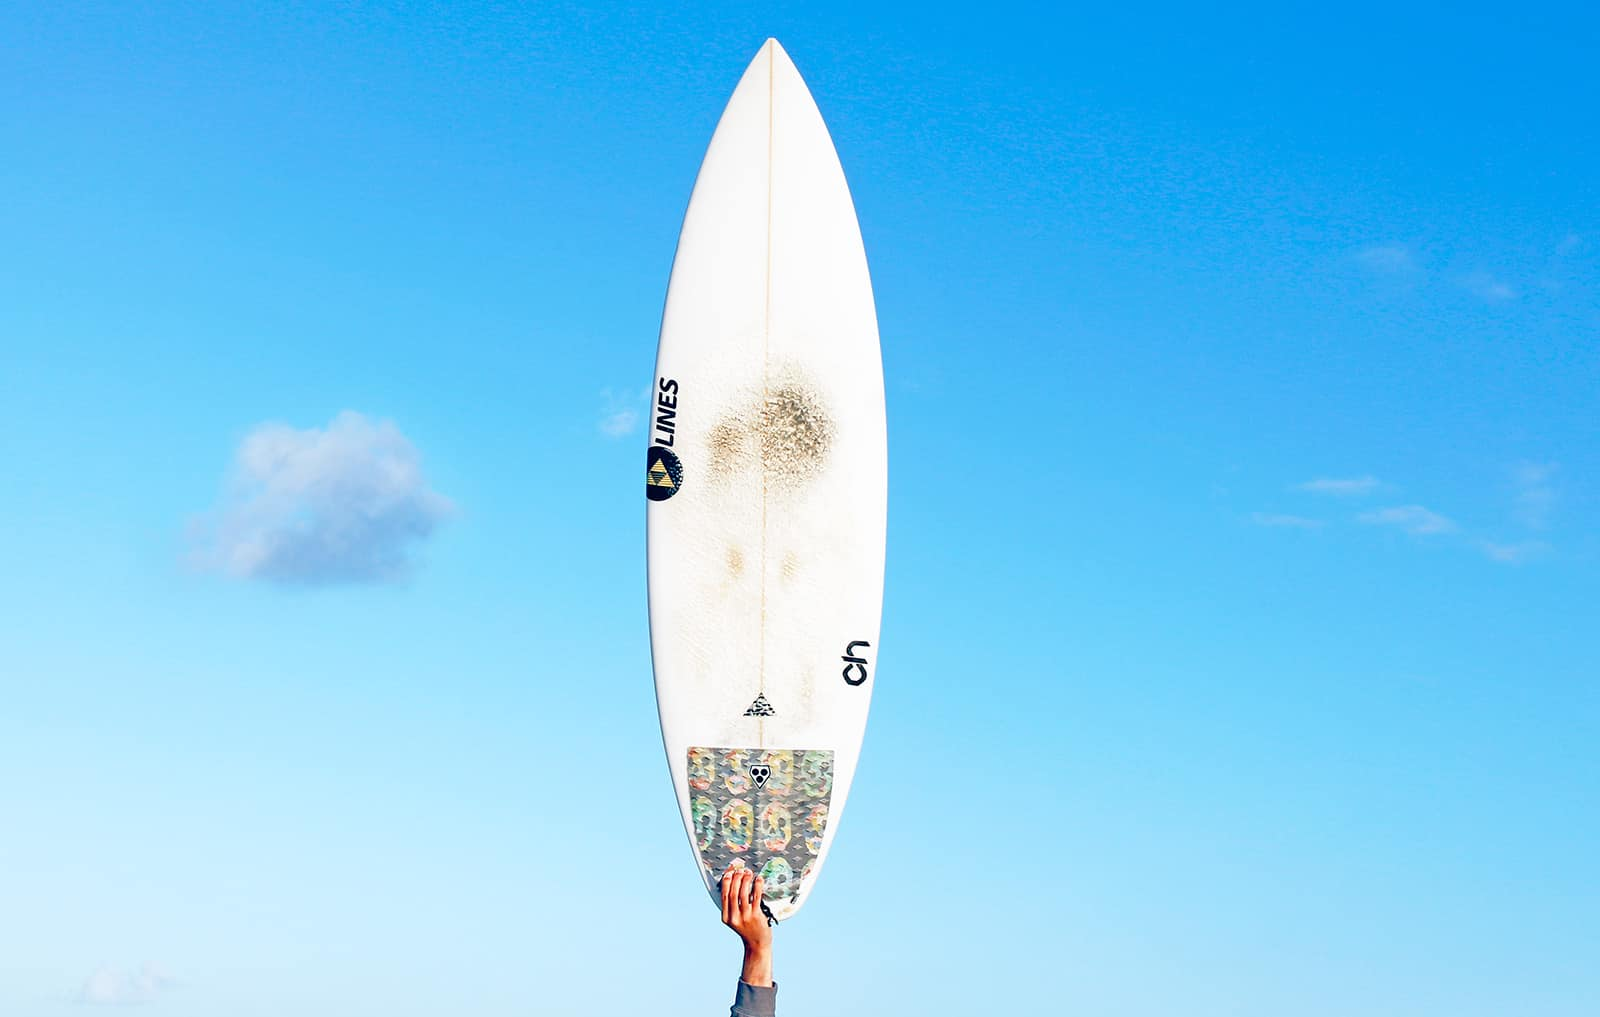 I always wanted a photo like this one. Not the easiest thing to shoot in windy Fuerte:). That's me holding my Lines surfboards Destructor 5'10